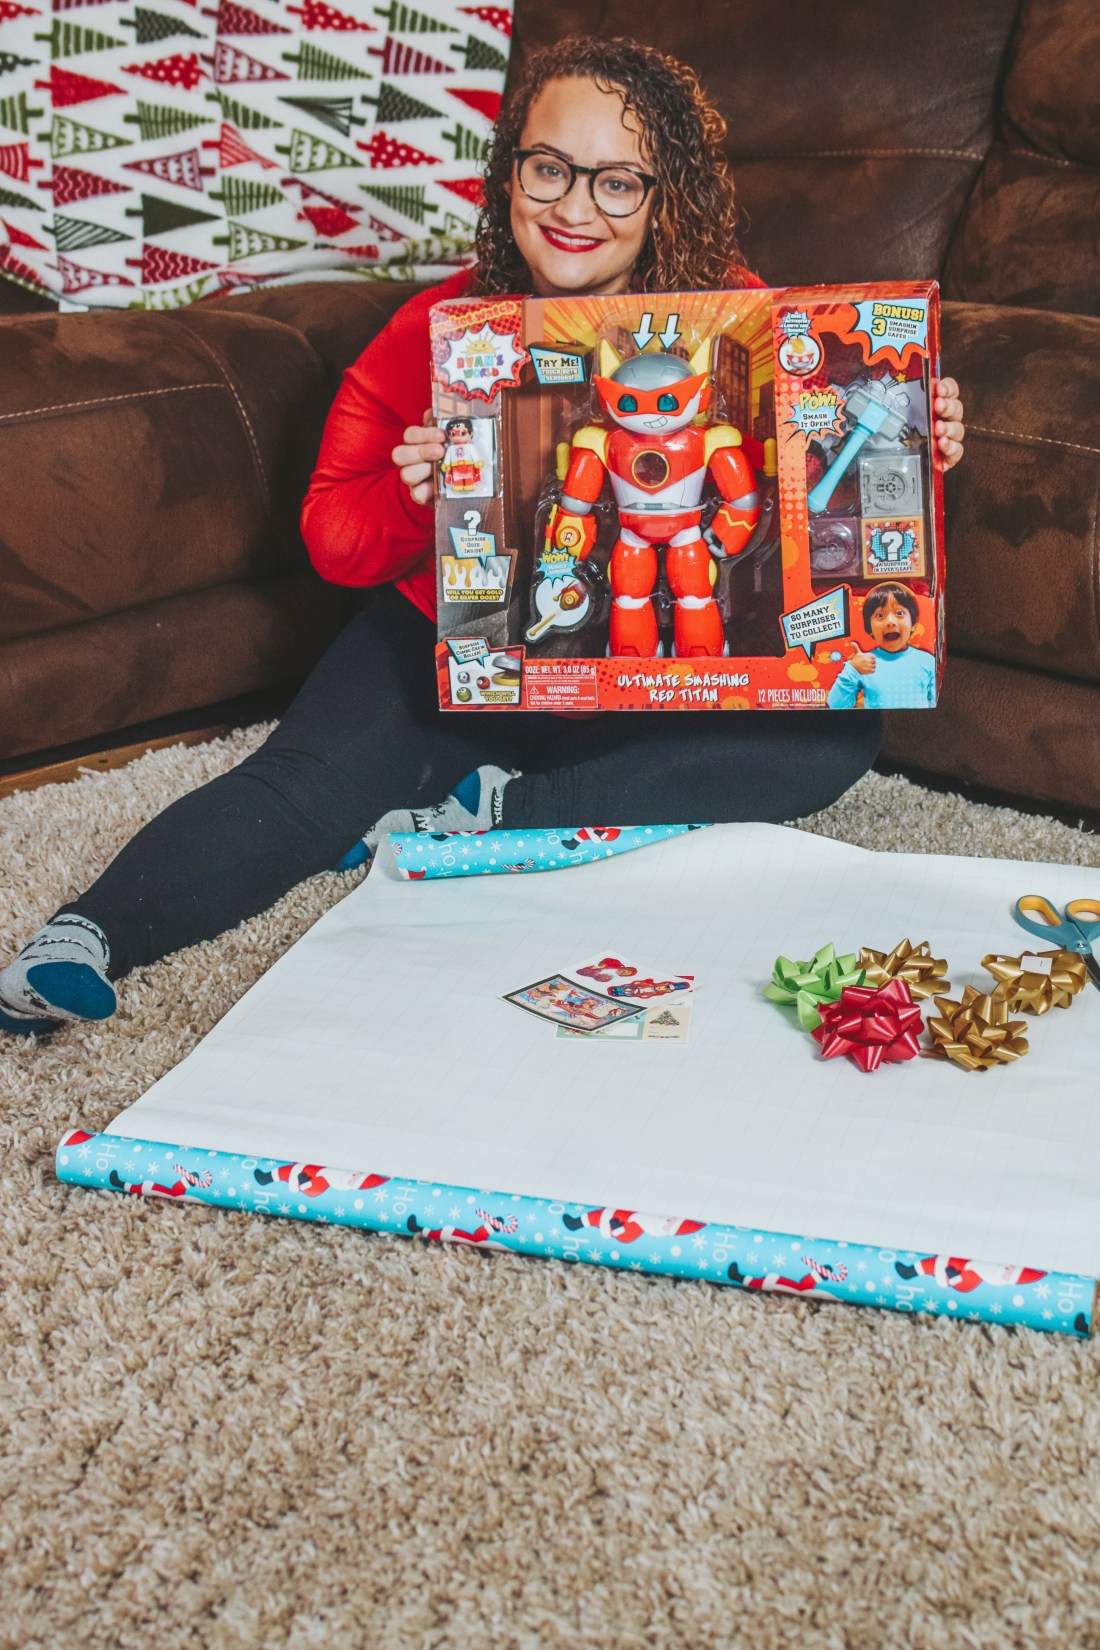 Ultimate Smashing Red Titan Gifts For 6-Year-Old Boys